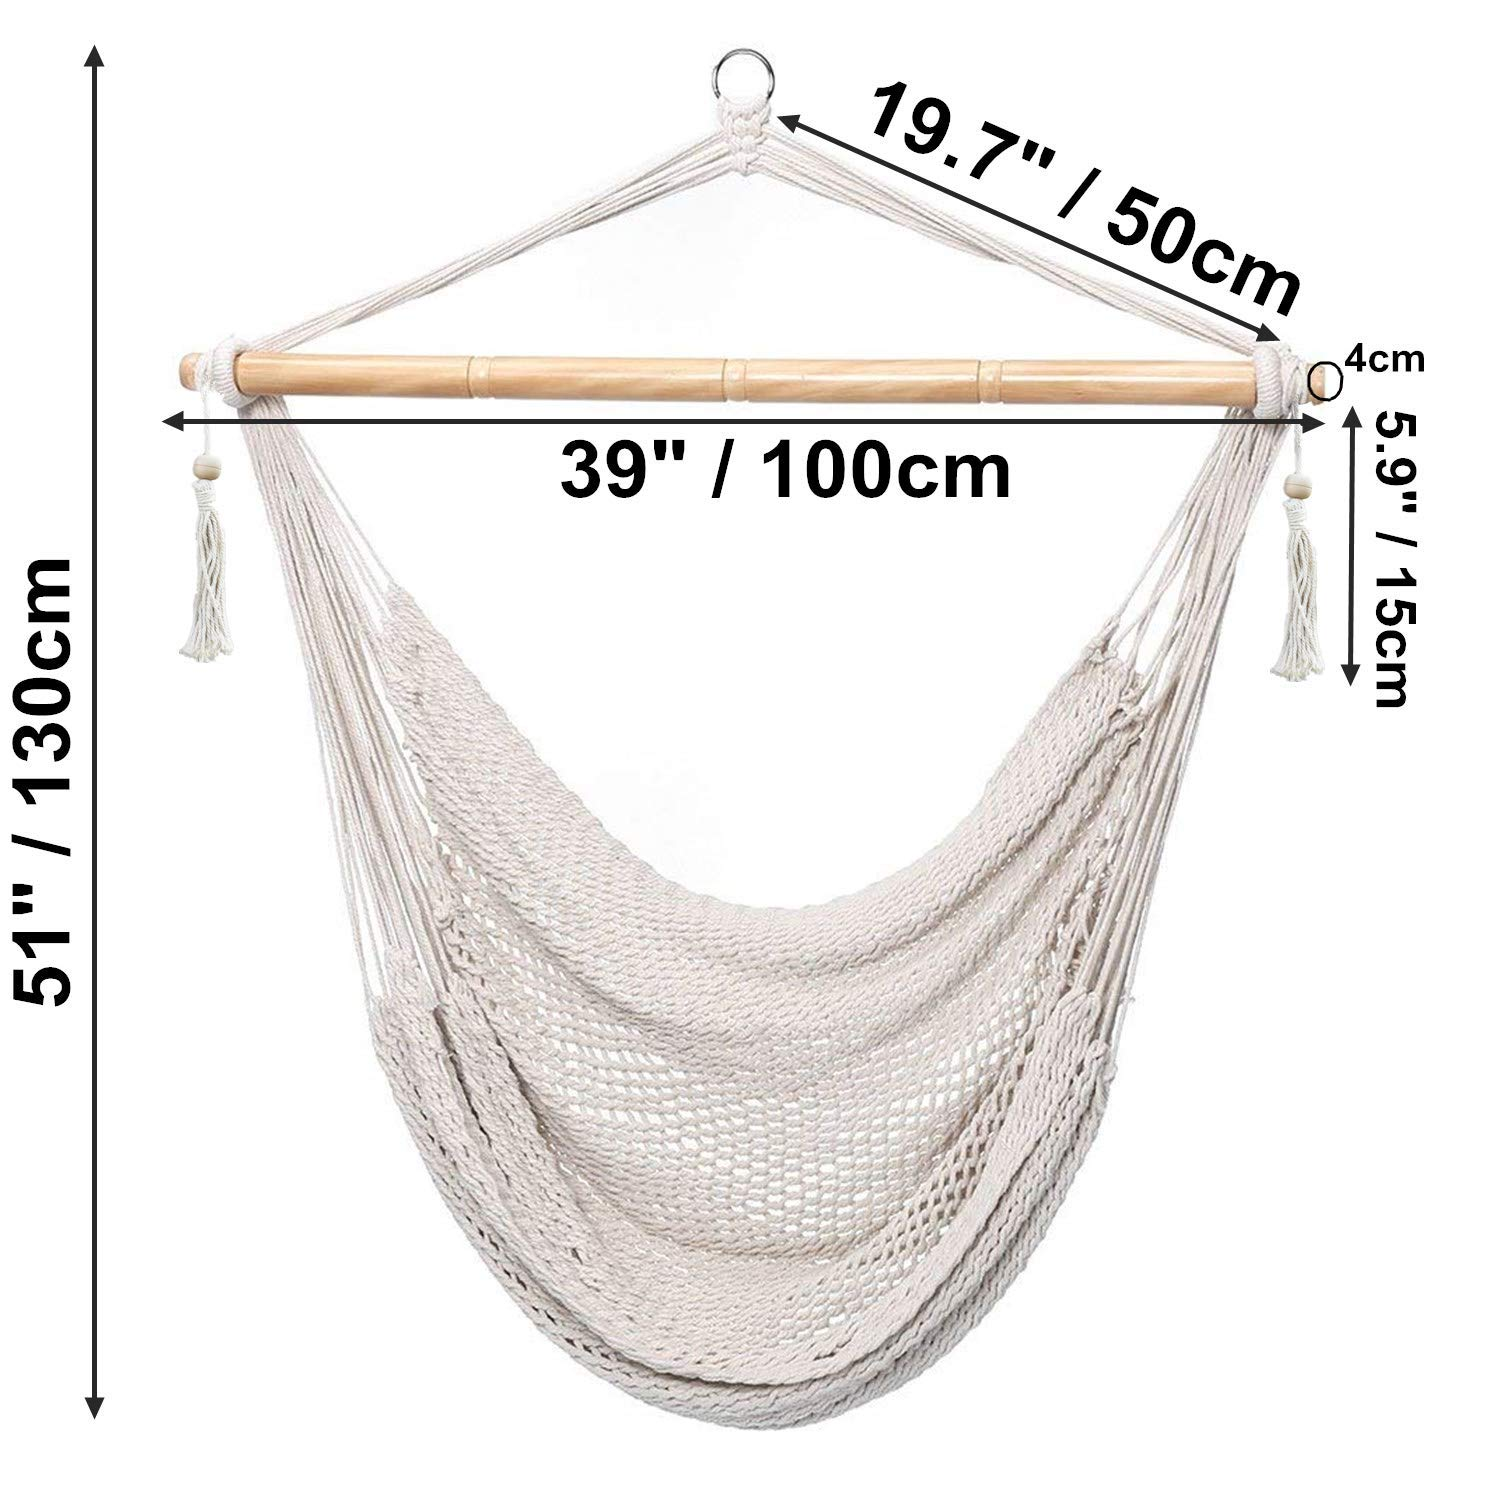 Amazon Com Cctro Mesh Hammock Net Chair Swing Hanging Rope Netted Soft Cotton Mayan Hammock Chair Swing Seat Porch Chair For Yard Bedroom Patio Porch Indoor Outdoor 300 Lbs Weight Capacity